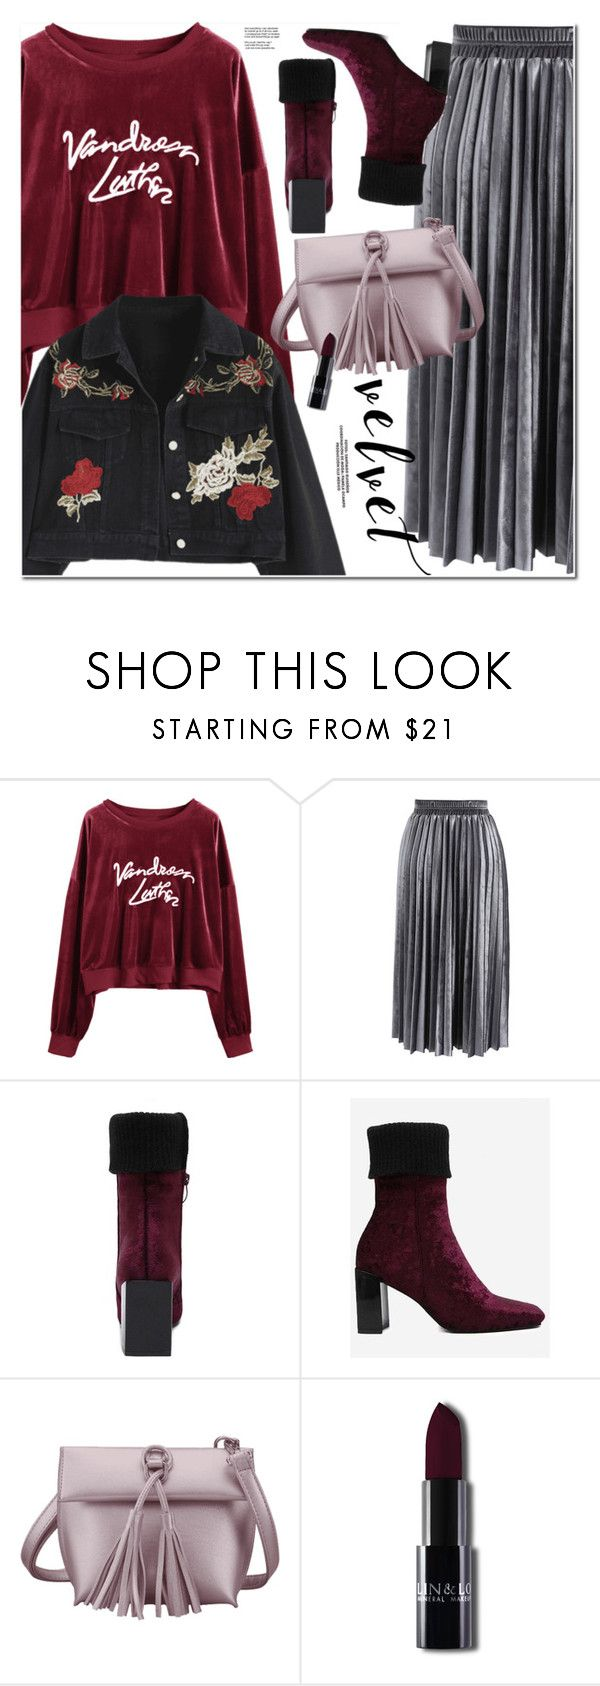 """Velvet"" by oshint ❤ liked on Polyvore featuring Chicwish"